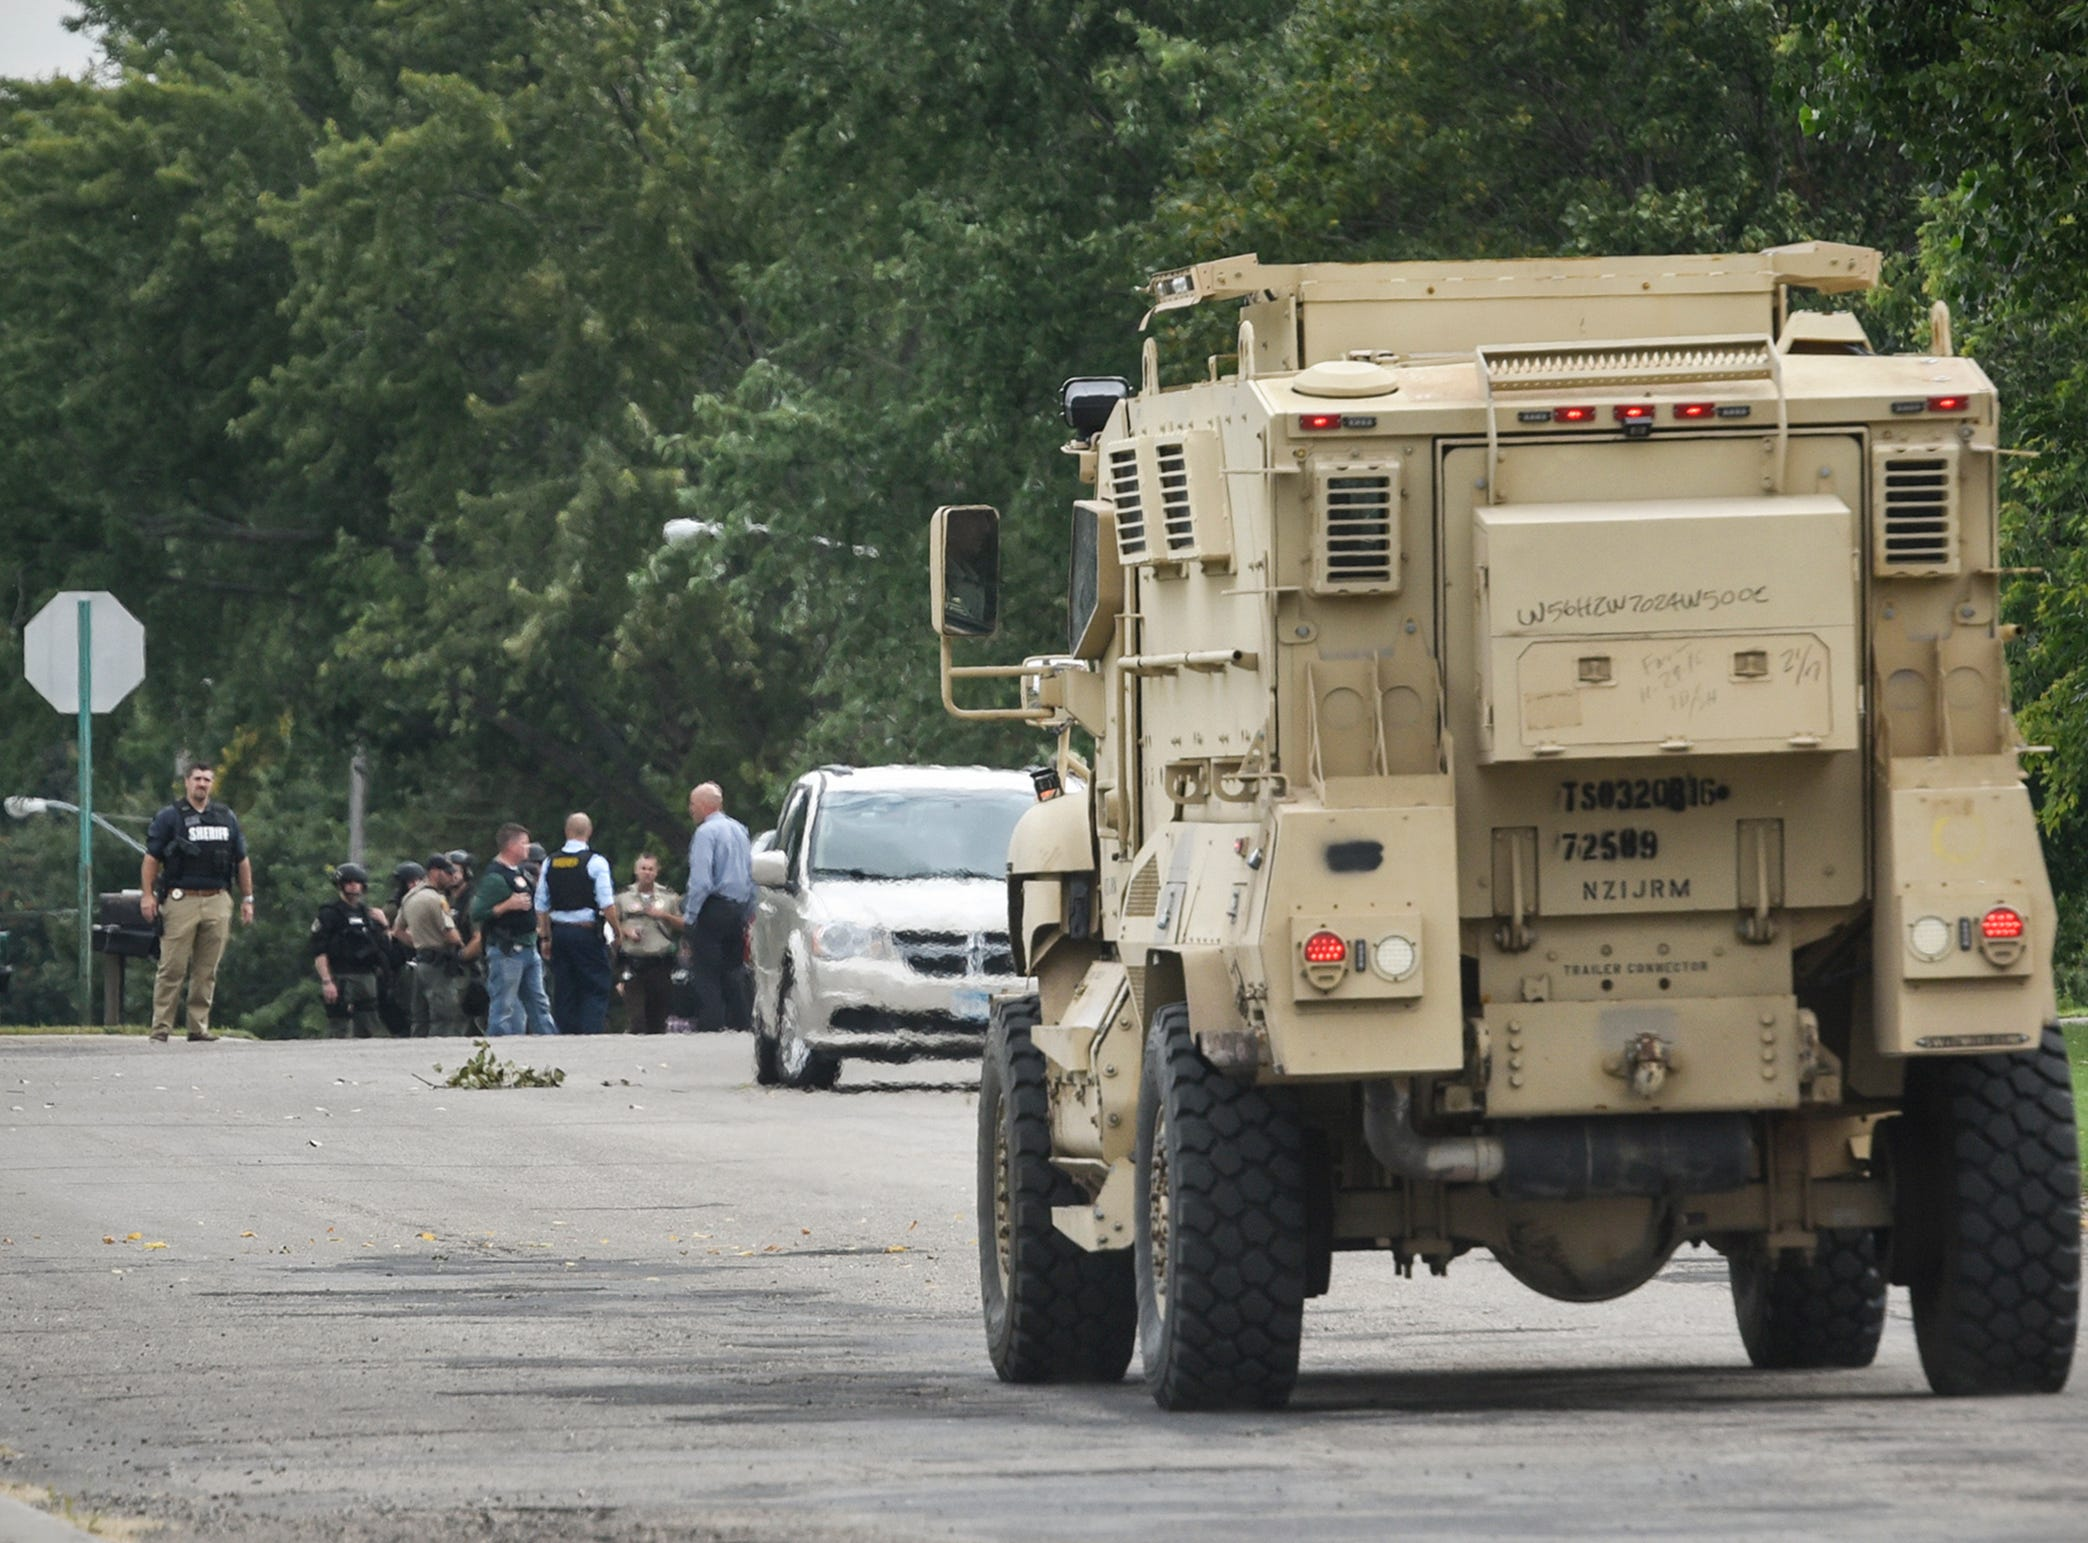 An armored vehicle approaches the scene where a Stearns County deputy was shot with an arrow Thursday, Sept. 13, in Sauk Centre. A suspect was taken into custody after a two-hour standoff.